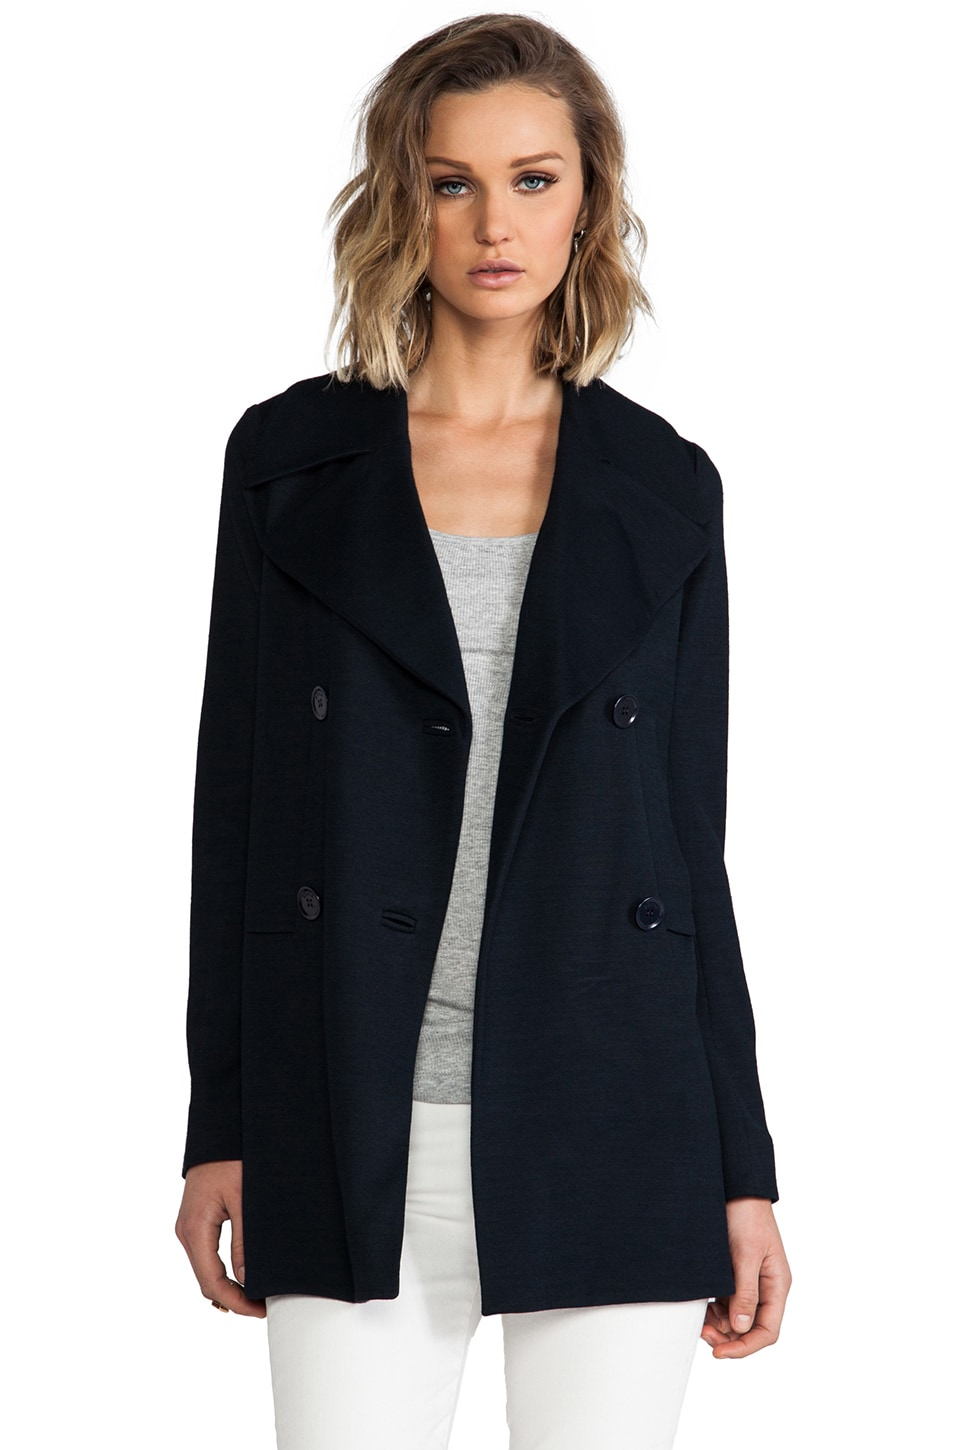 SONIA by Sonia Rykiel Light Jersey Jacket in Navy